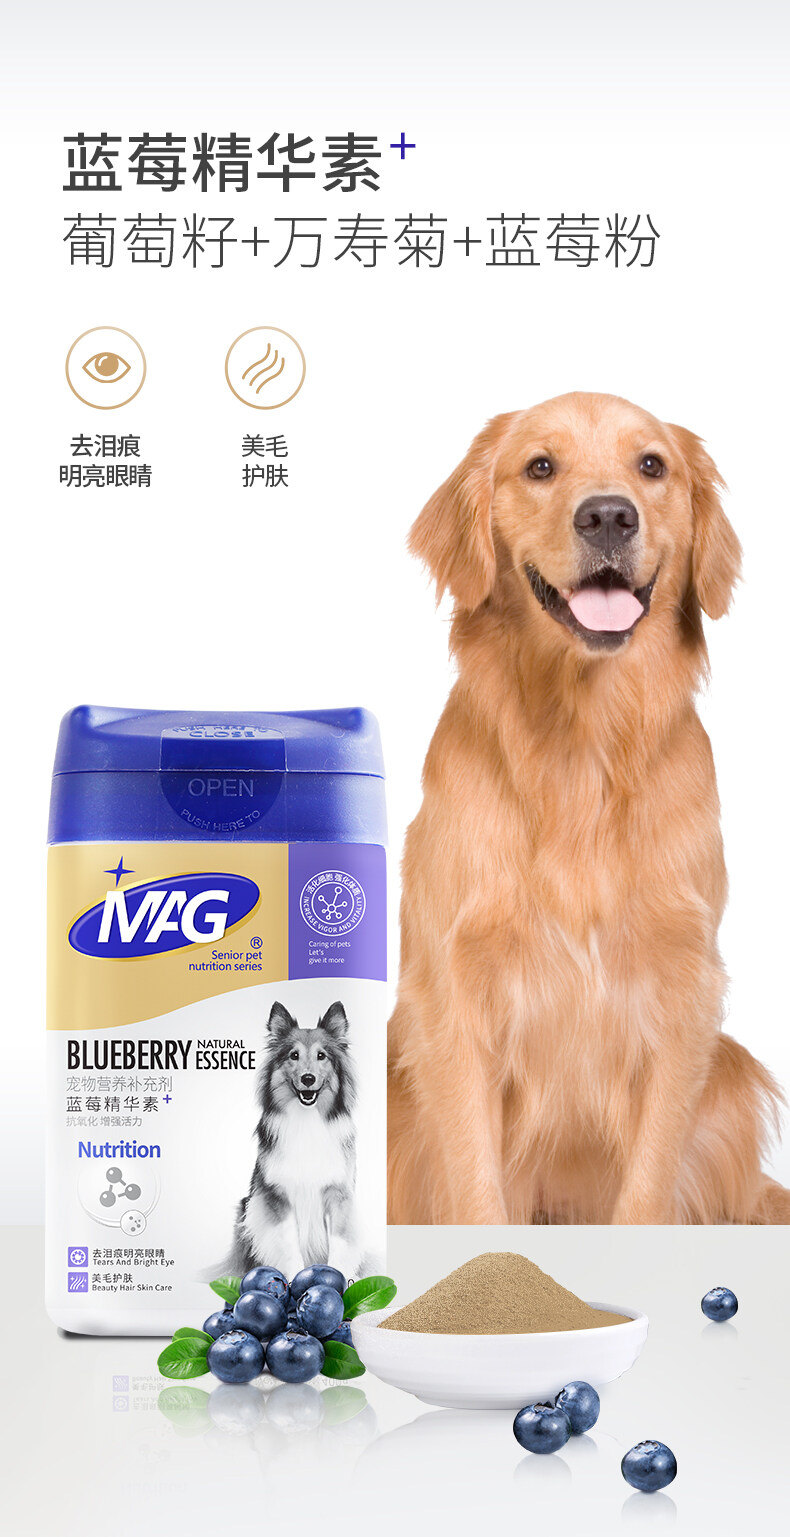 MAG Natural Blueberry Essence / Beauty Hair and Bright Eye 400g 天然蓝莓精华素